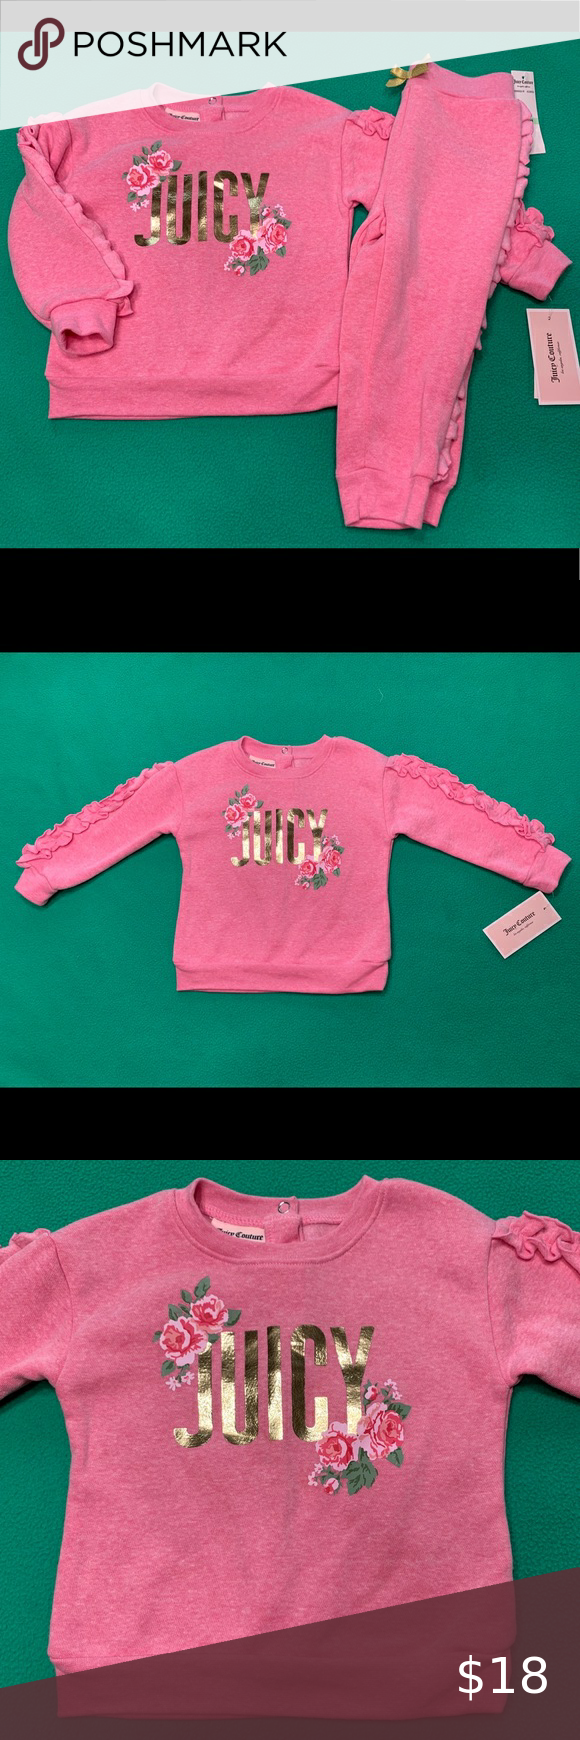 Sold Baby Girl Juicy Sweatsuit In 2020 Sweatsuit Juicy Couture Pink Size Girls